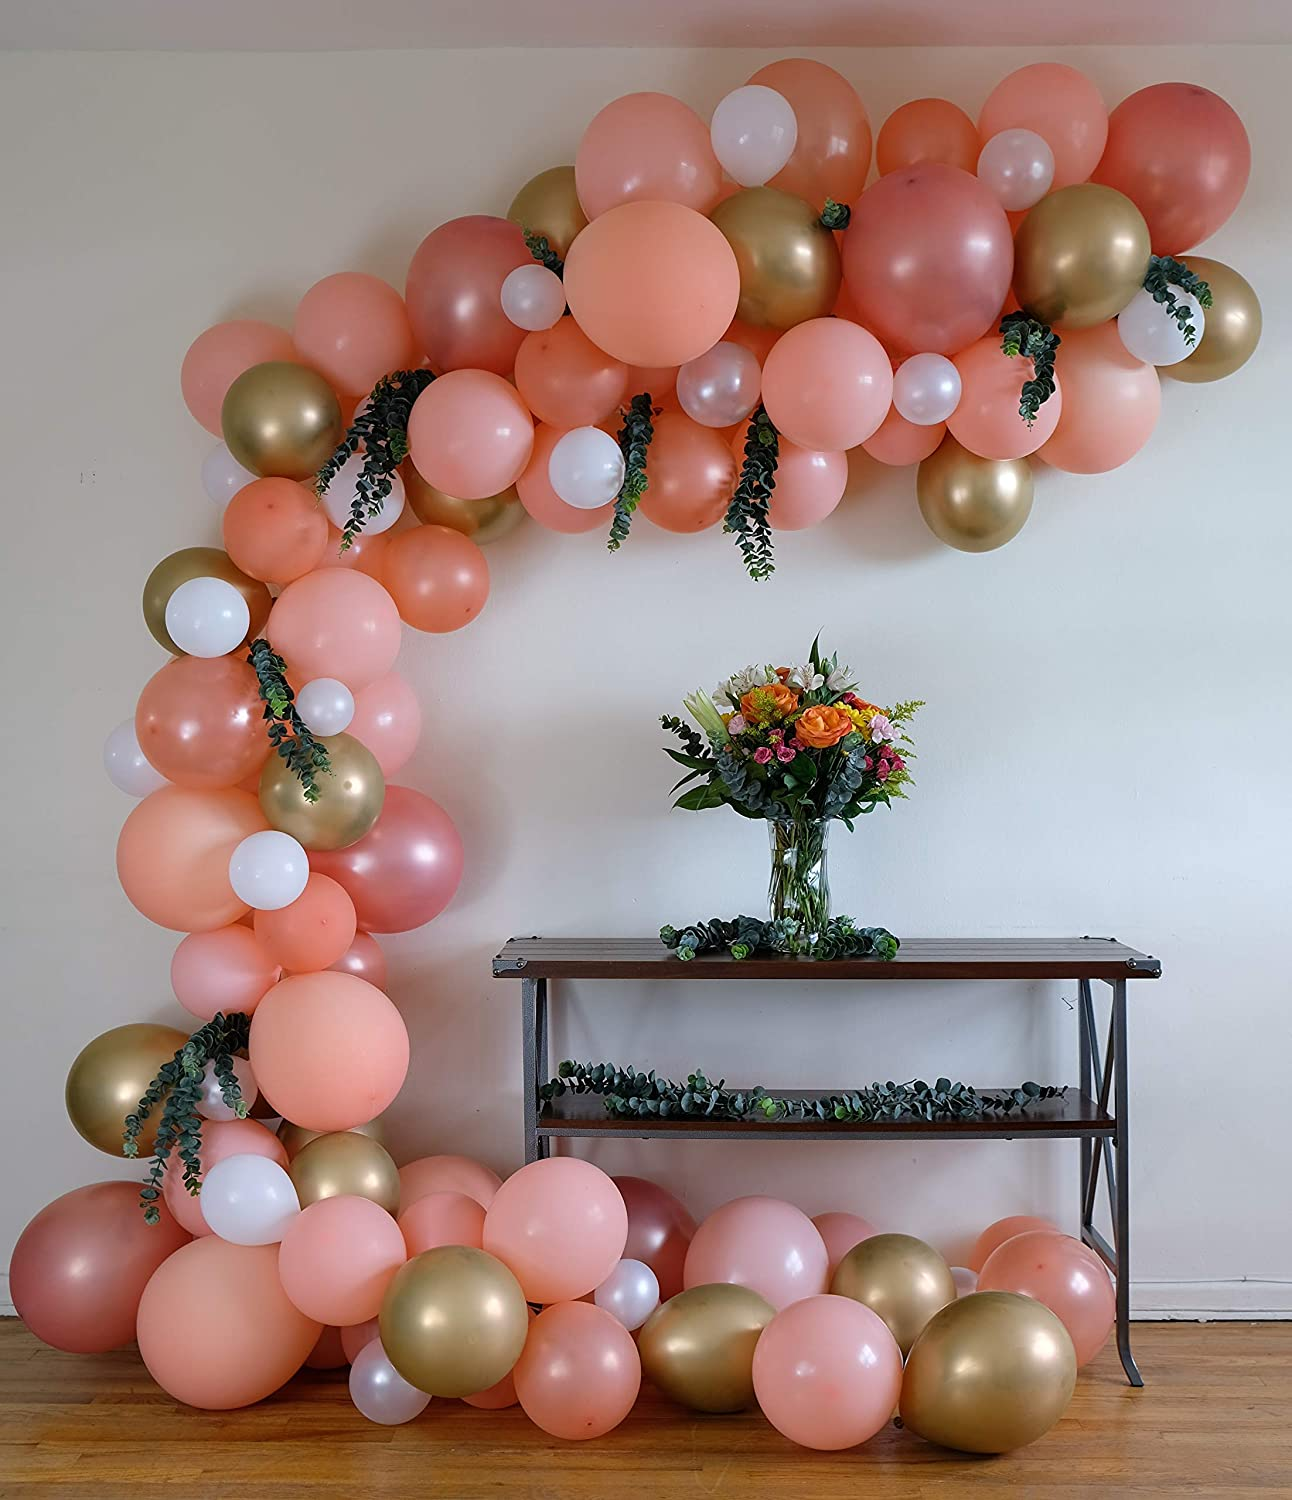 Balloon Garland Arch Kit, 110 Pieces, Latex Balloons, Party Supplies Decorations, 16 Feet Long Decorating Strip, Peach Blush, Rose Gold, Chrome Gold, White, Pearl Balloons SM-XL